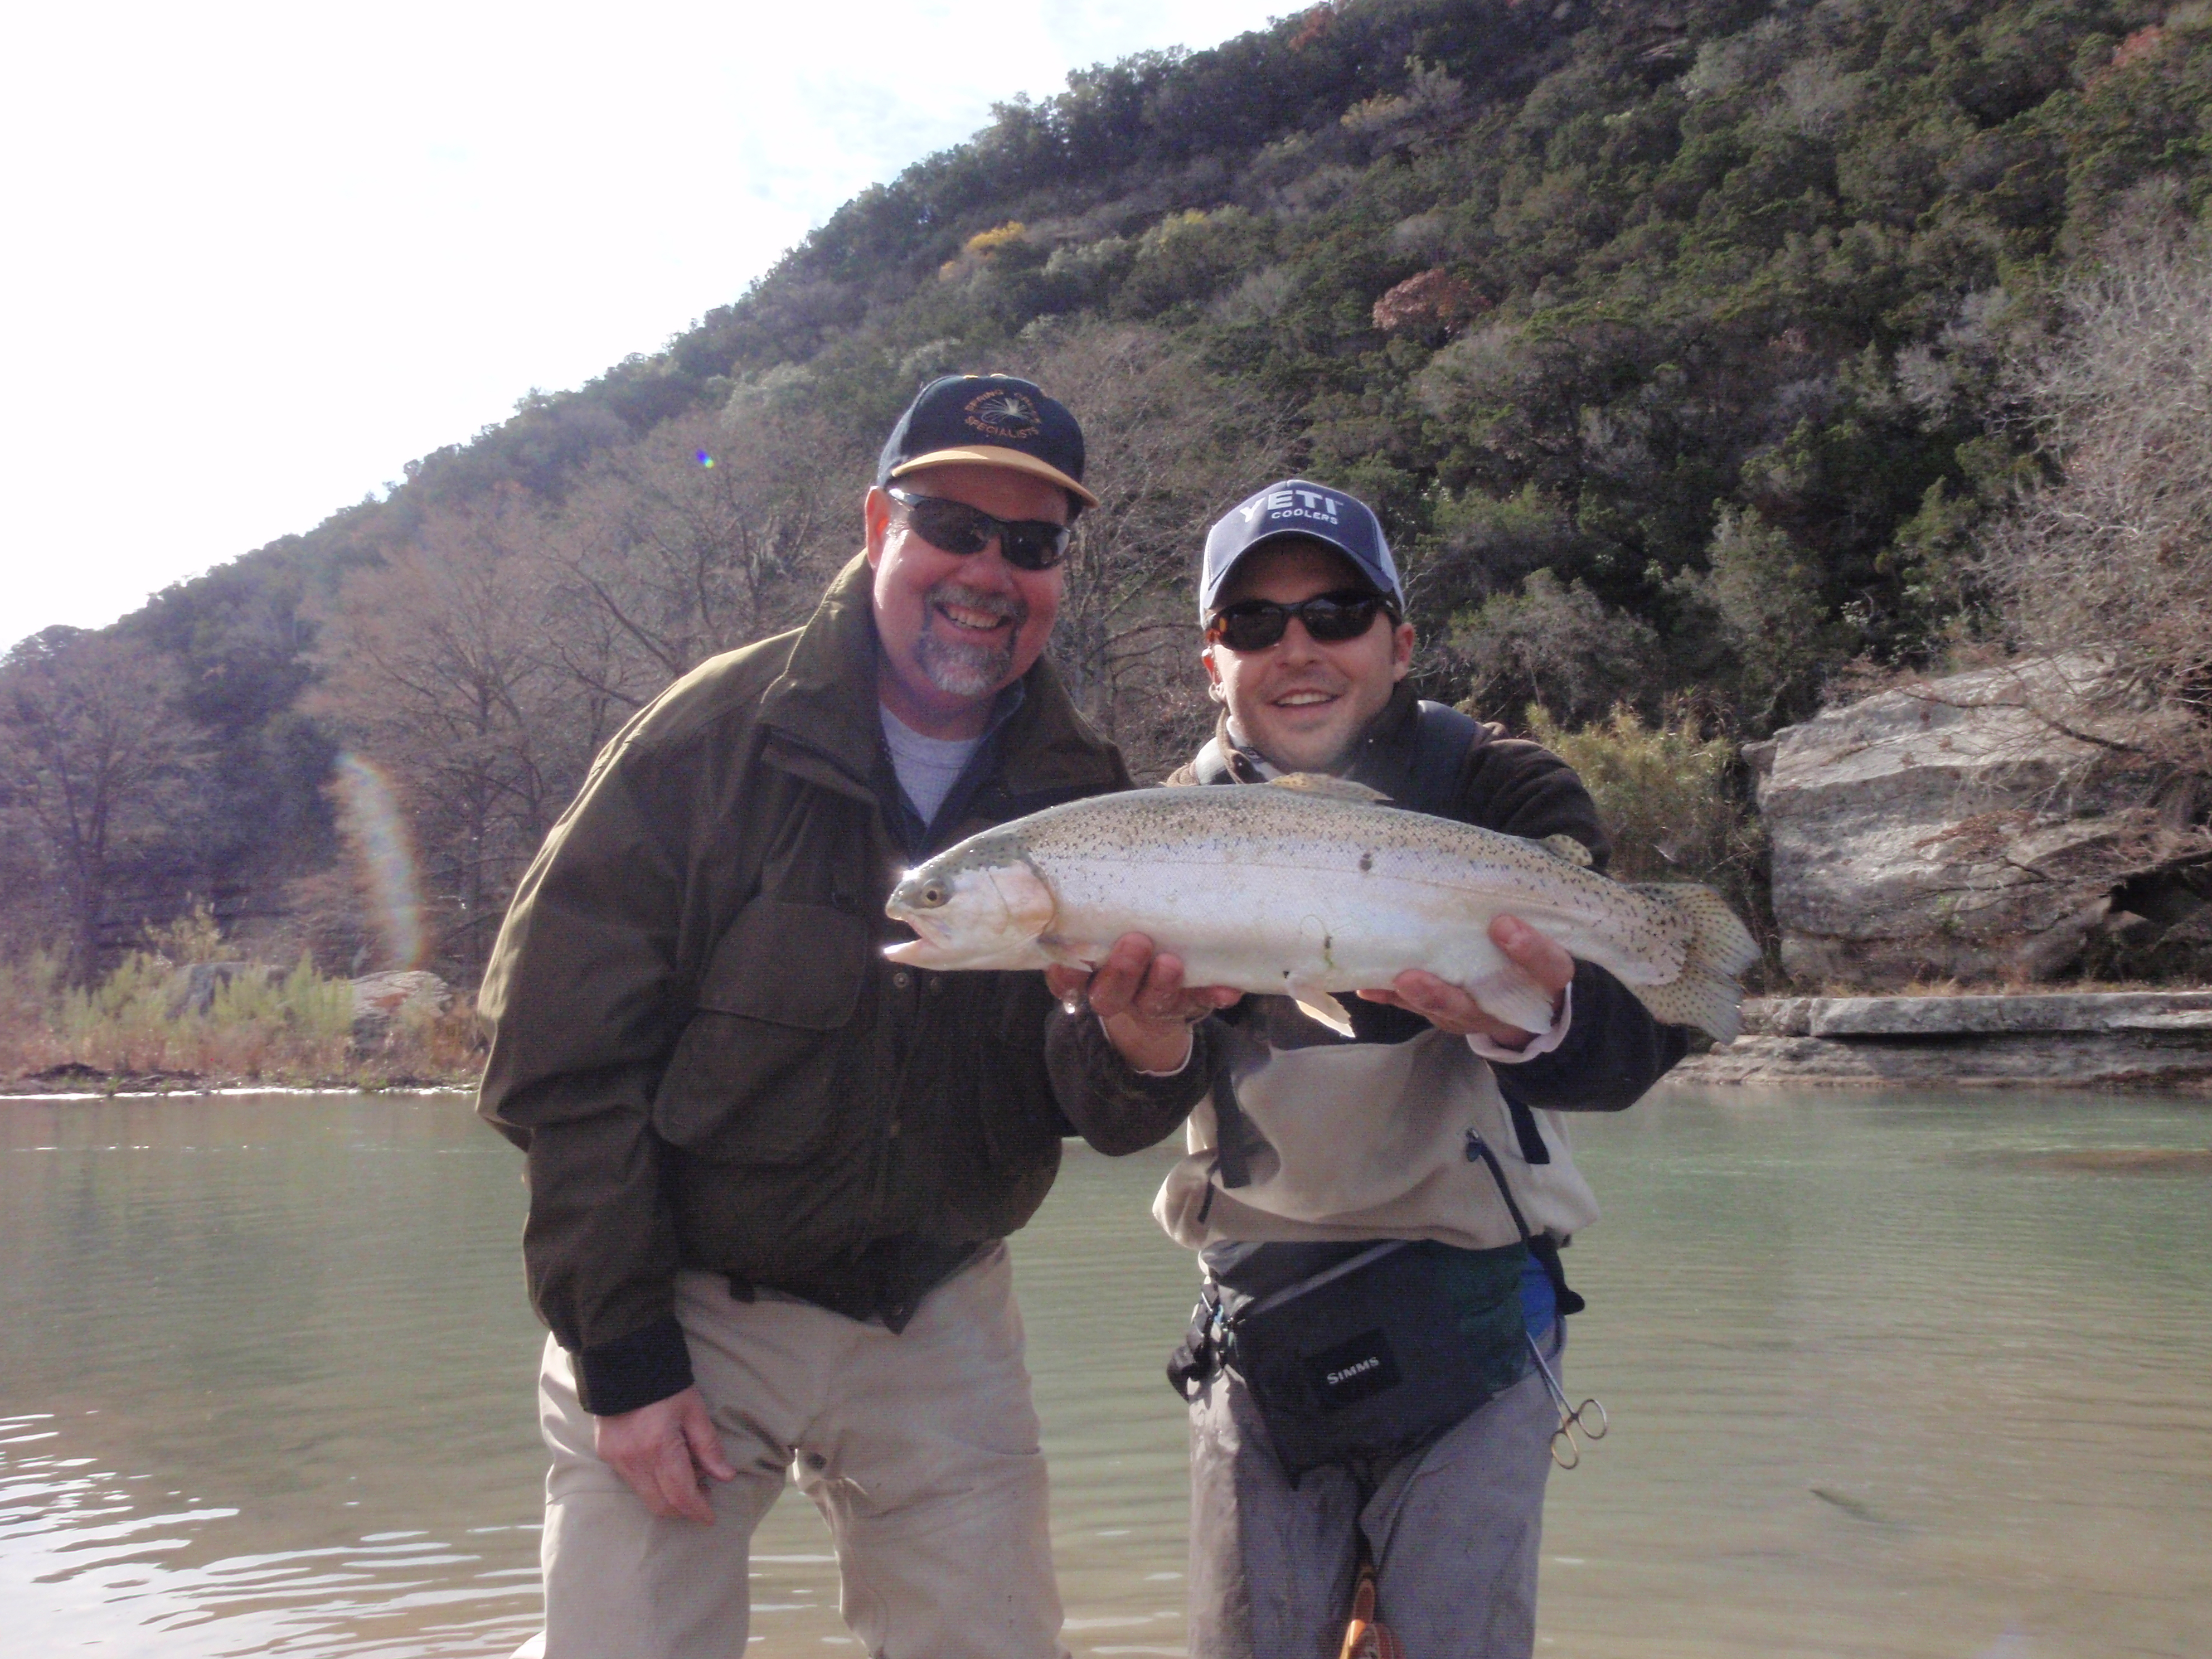 Guadalupe river fly fishing report 12 21 09 for Guadalupe river trout fishing